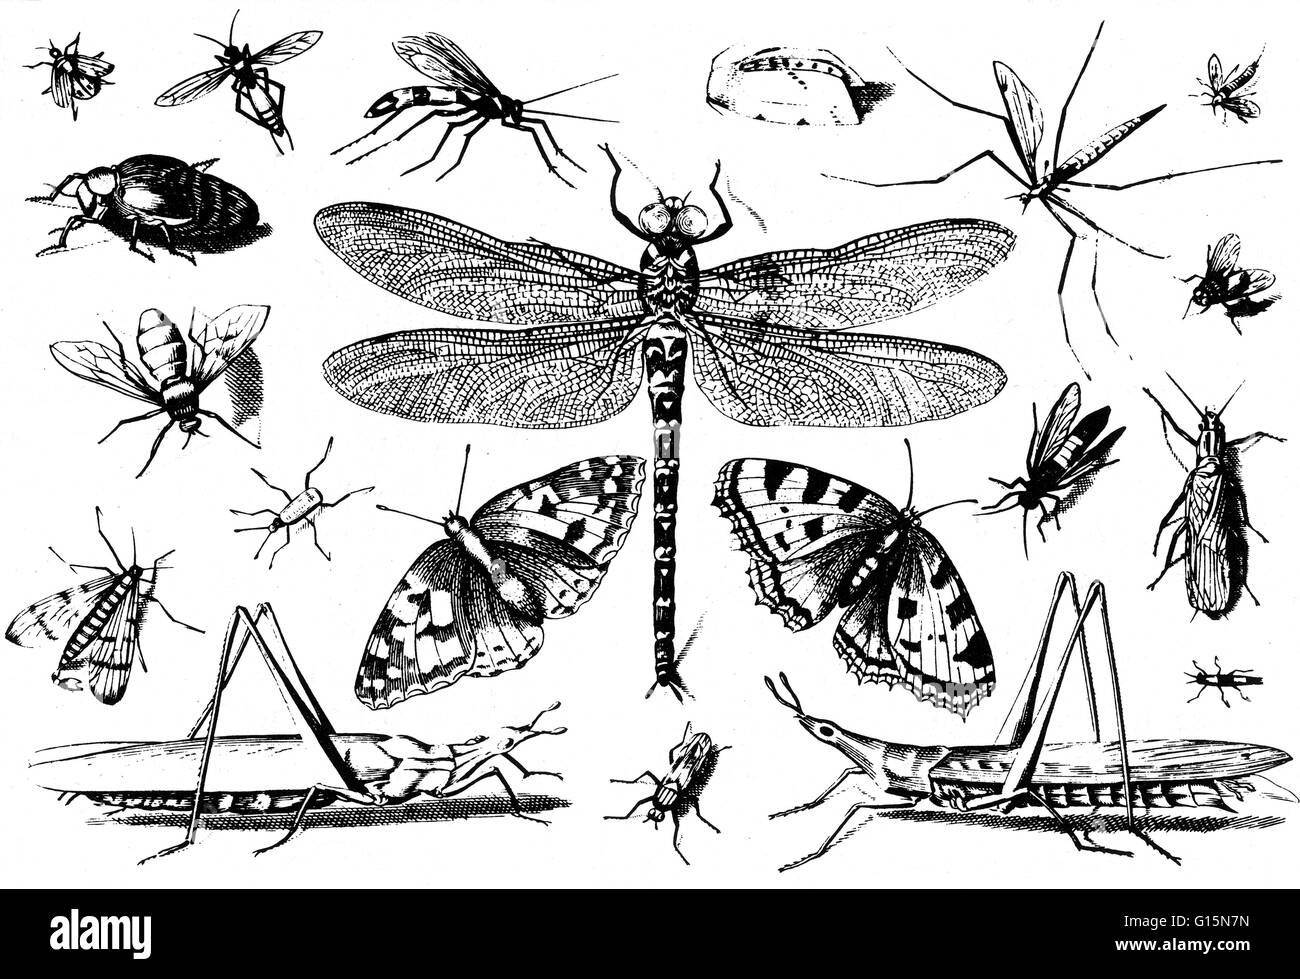 Insects Jacob Hoefnagel Engraving From George Hoefnagel S